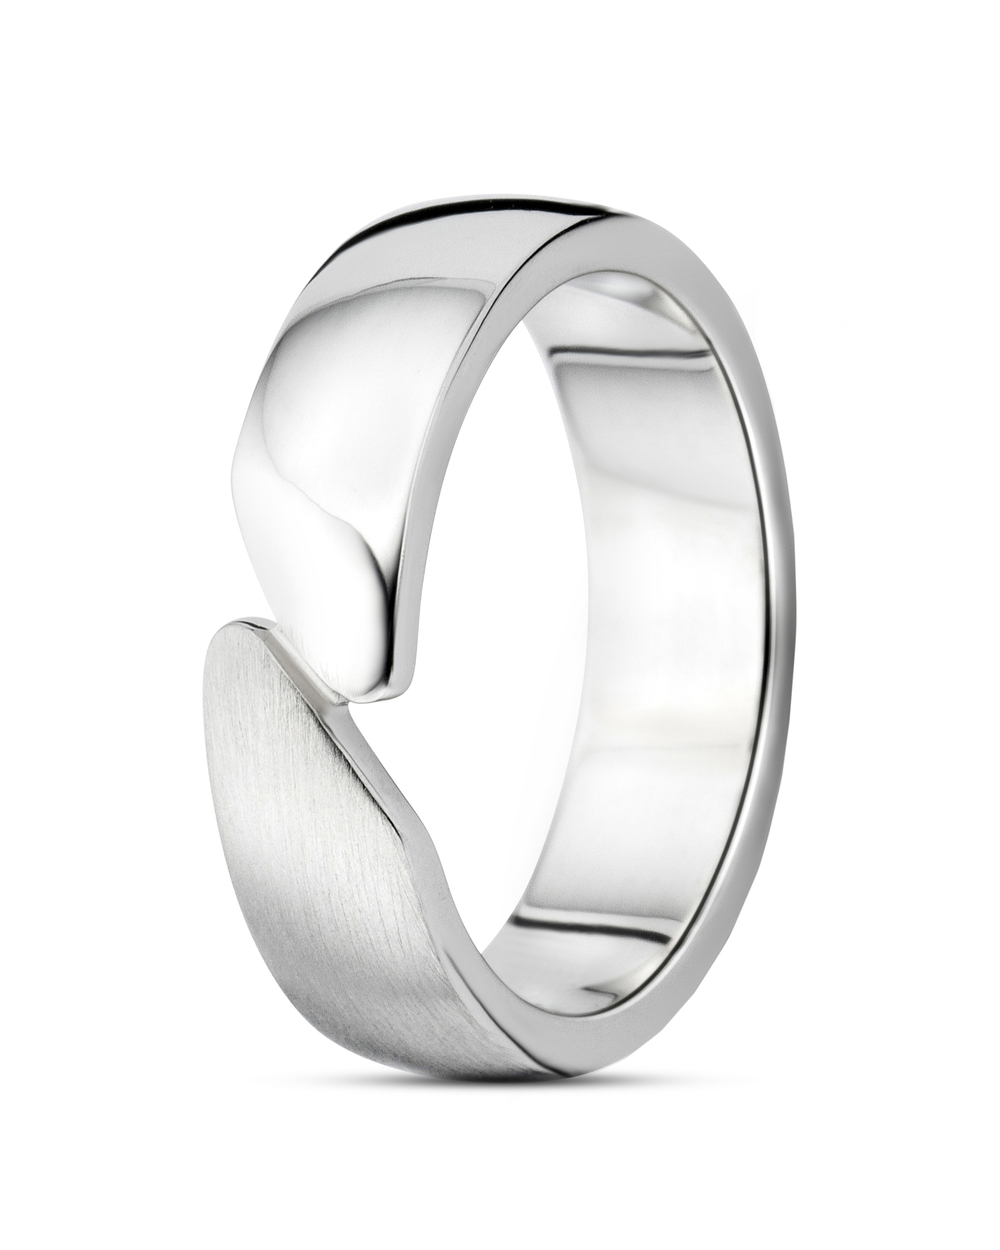 Anna Malou, Ring aus 925 Sterling Silber 52